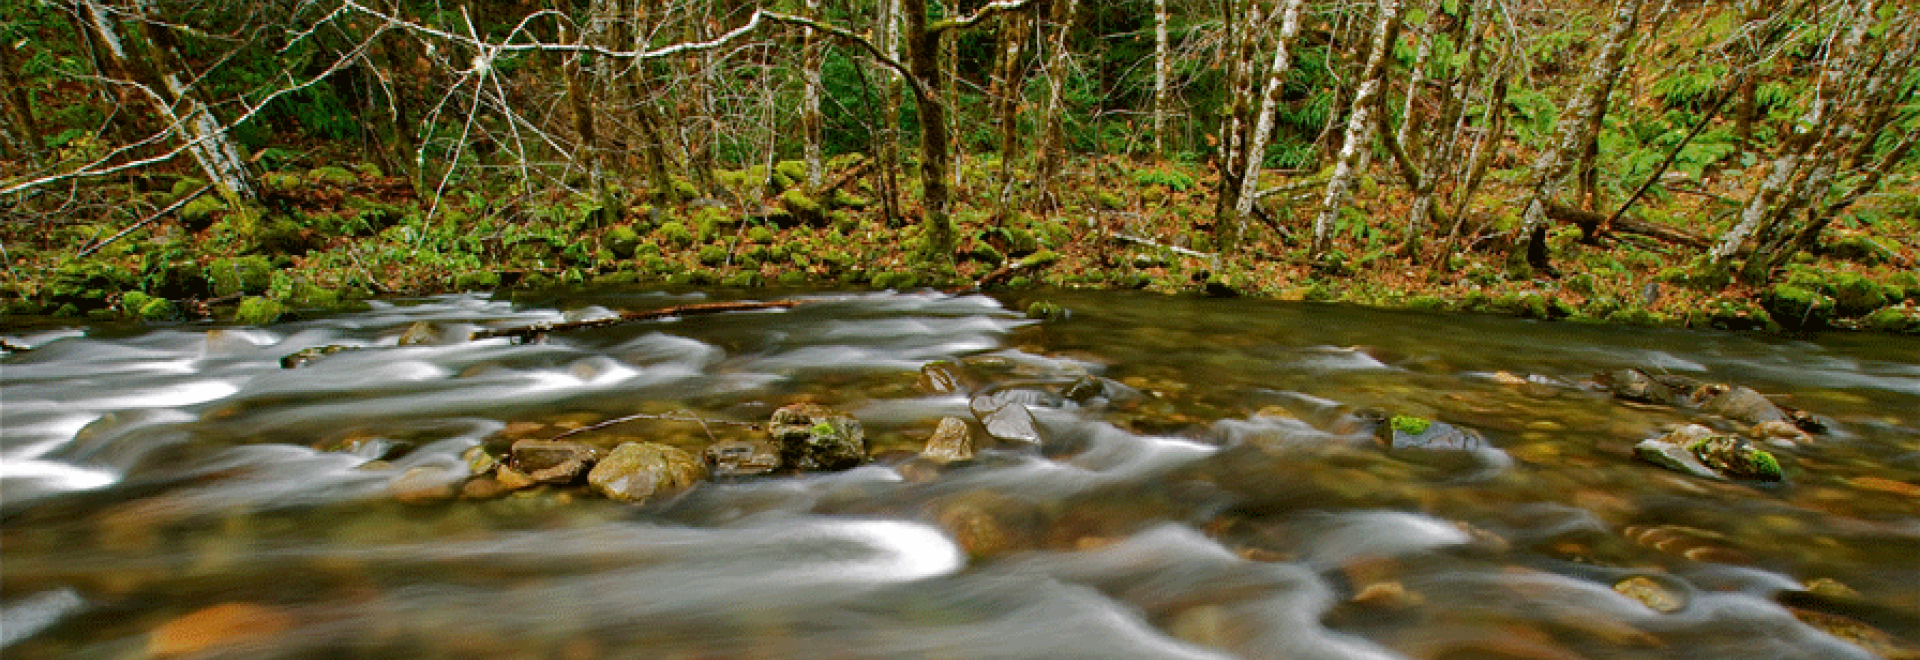 The Smith River flowing gently over rocks